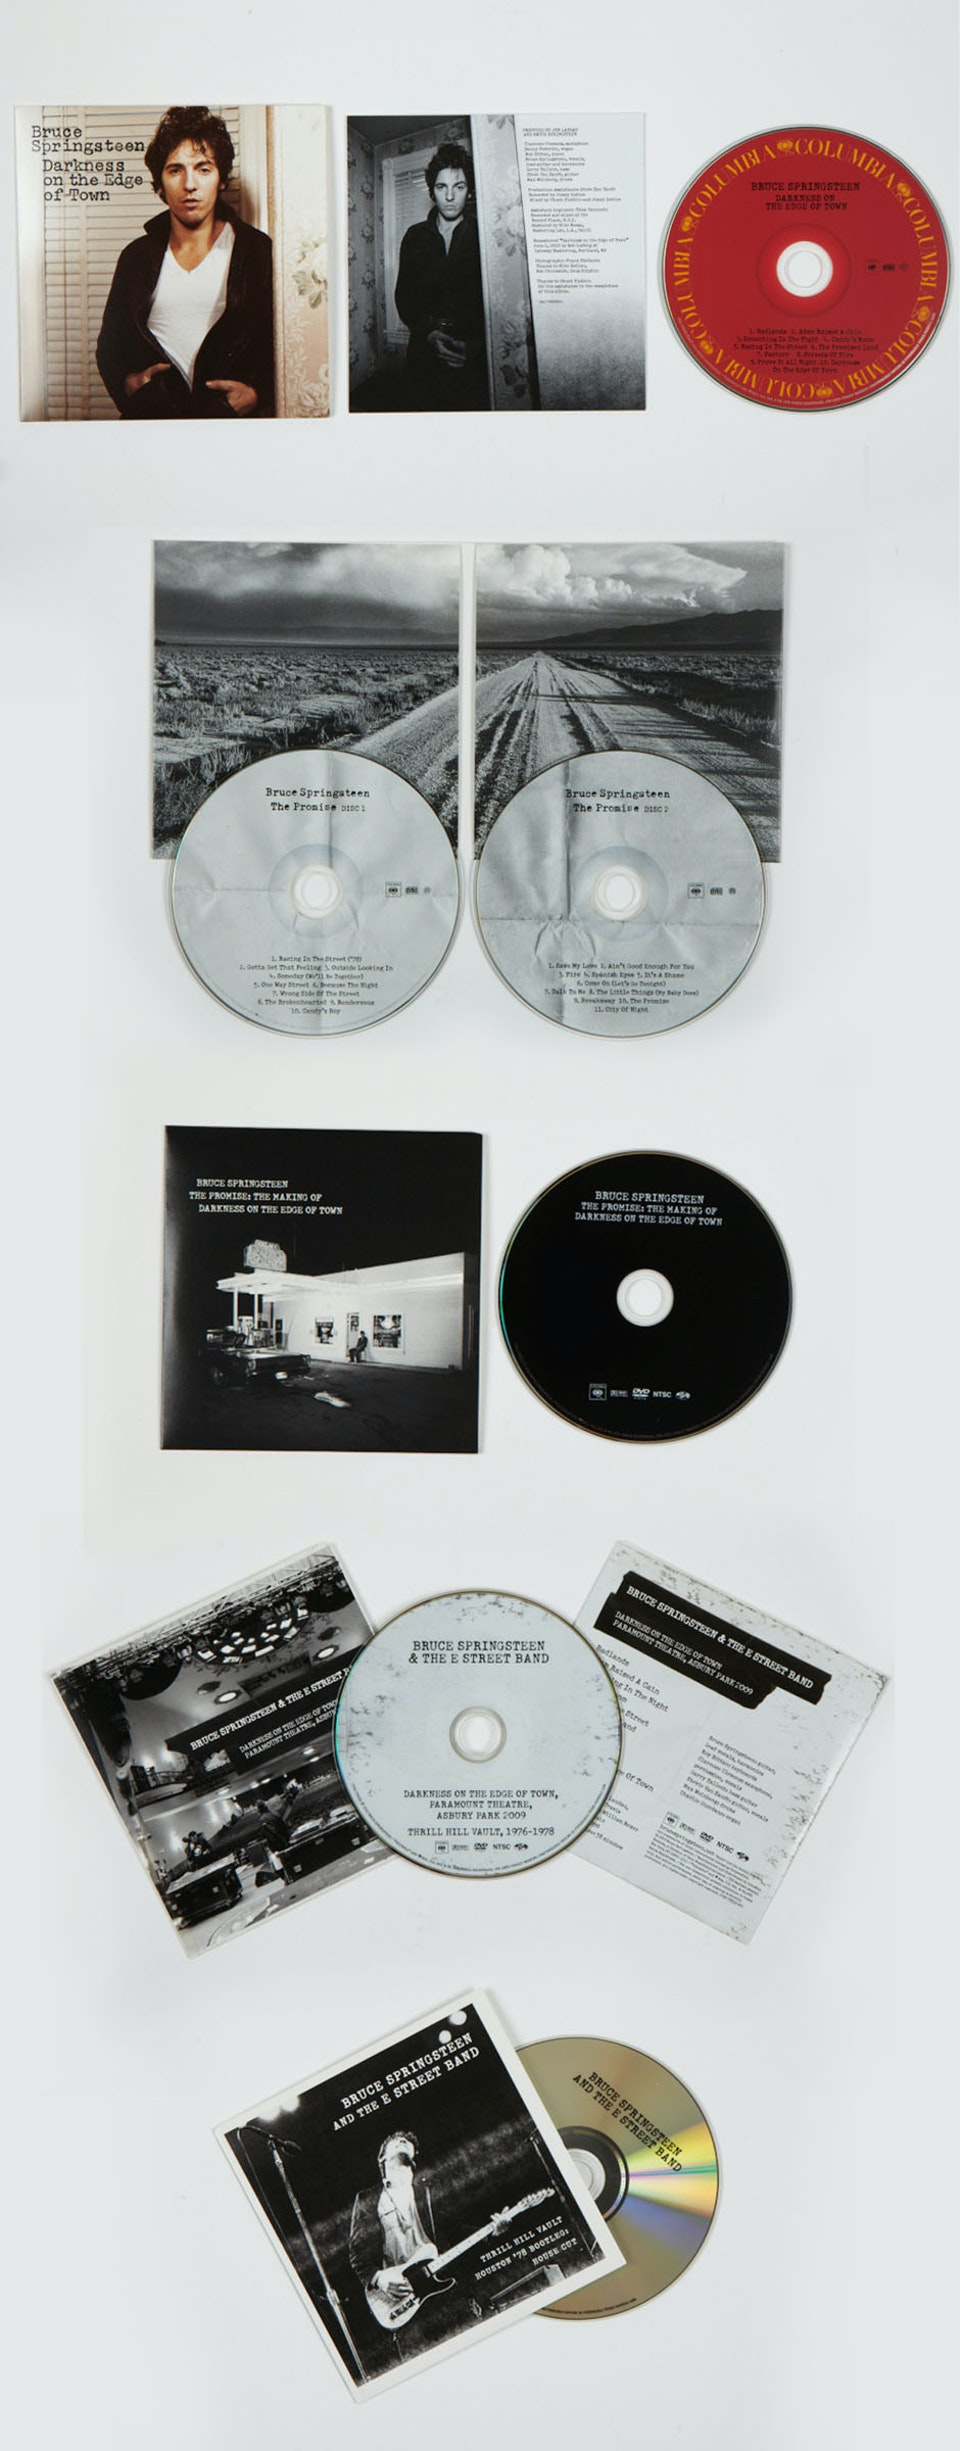 Grammy winning Darkness on the Edge of Town - CDs and DVDs